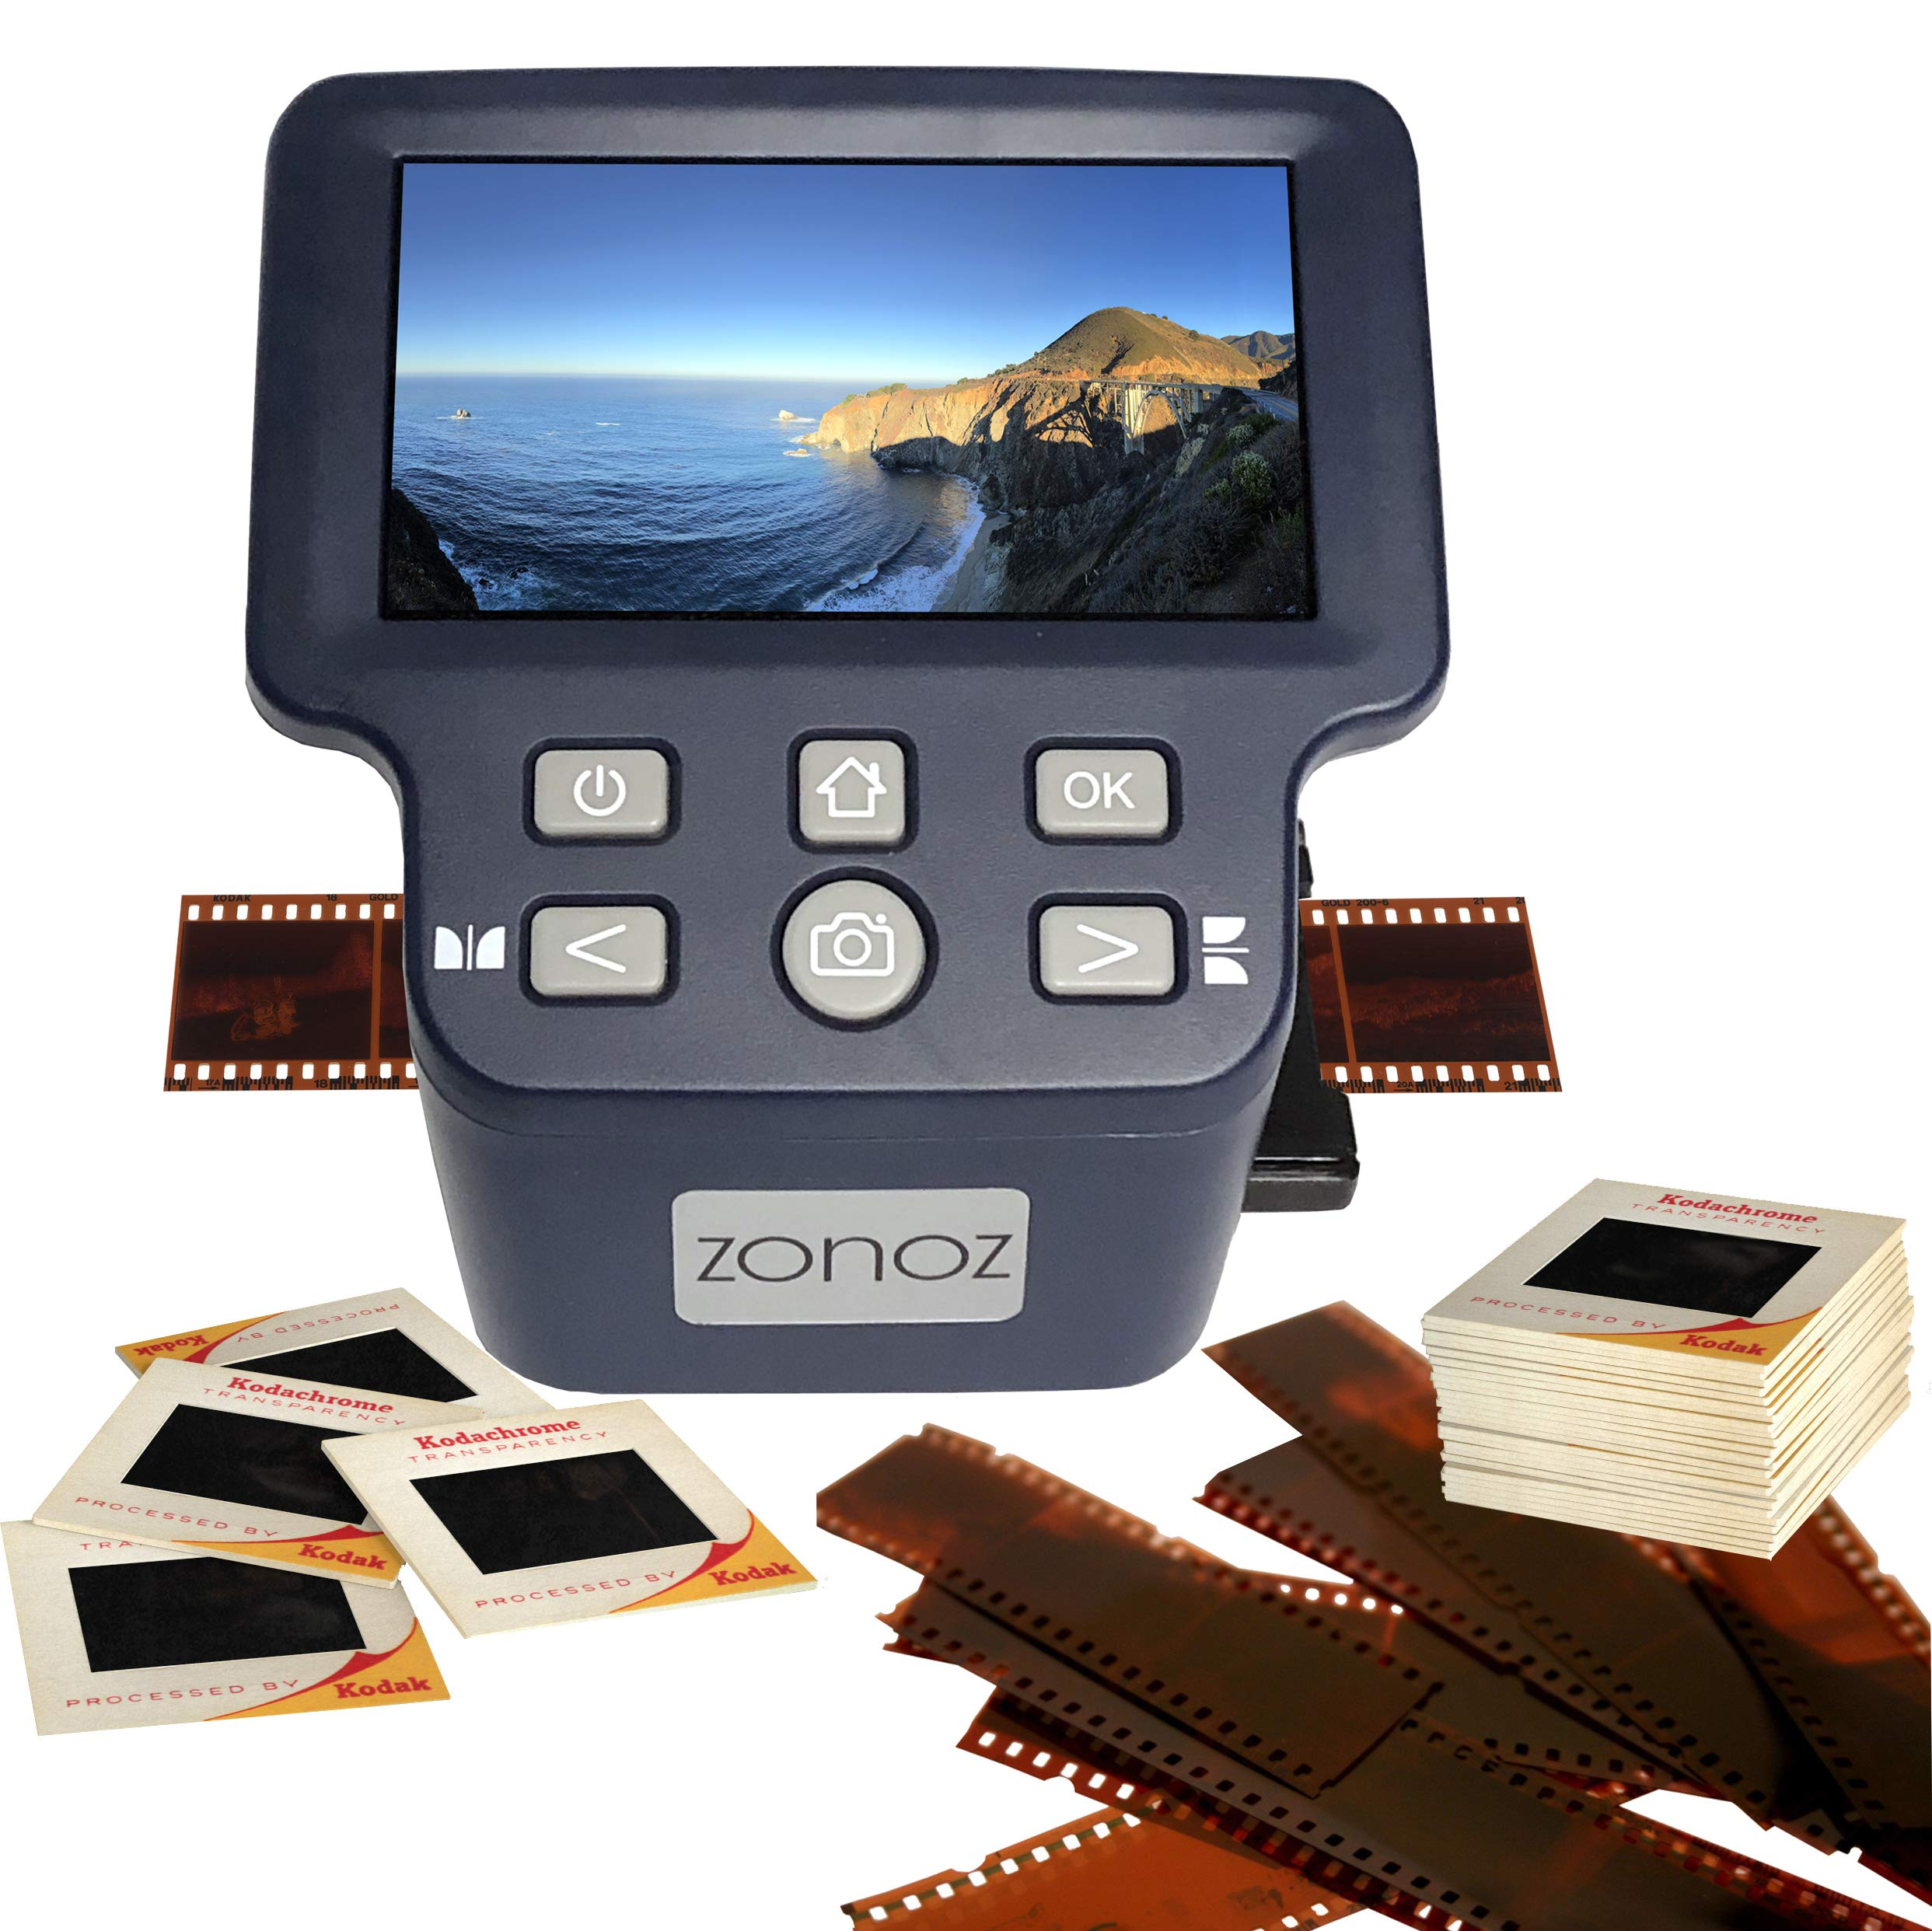 zonoz FS-Four Digital Film & Slide Scanner Converter w/HDMI Output - Converts 35mm, 126, 110, Super 8 & 8mm Film Negatives & Slides to JPEG - Large 5'' LCD, Easy-Load Adapters (Worldwide 110V-220V) by zonoz (Image #9)